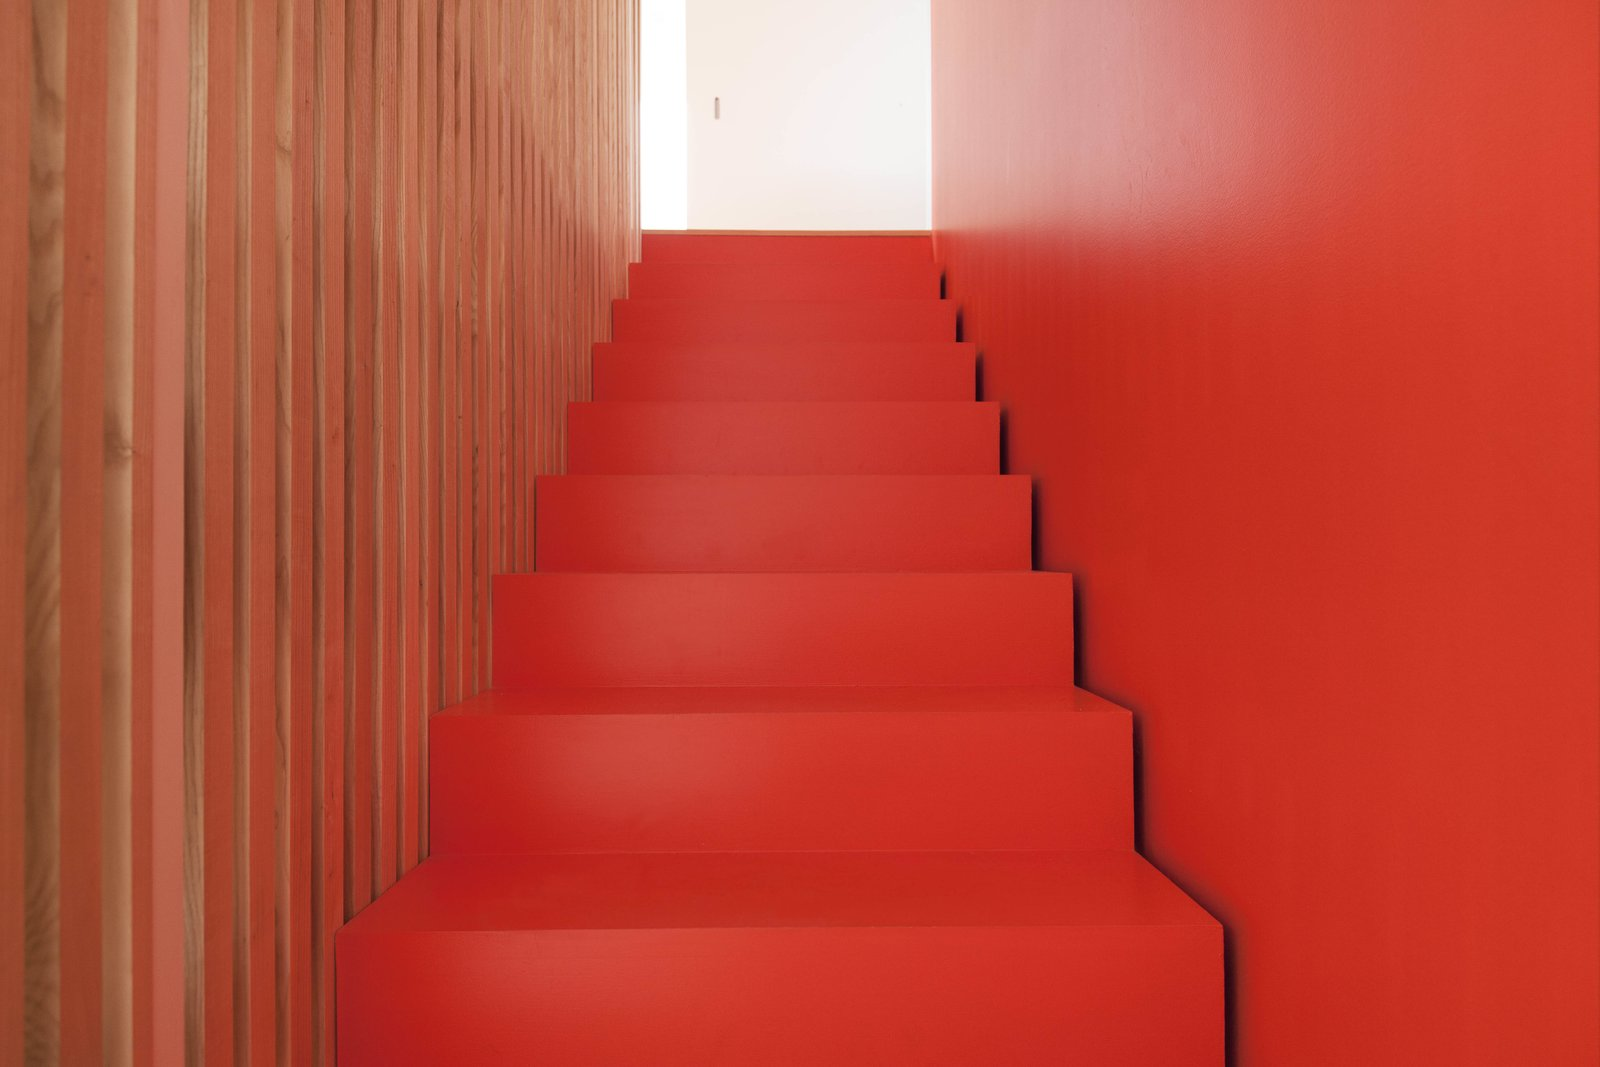 The stairs are coated in orange lacquer.